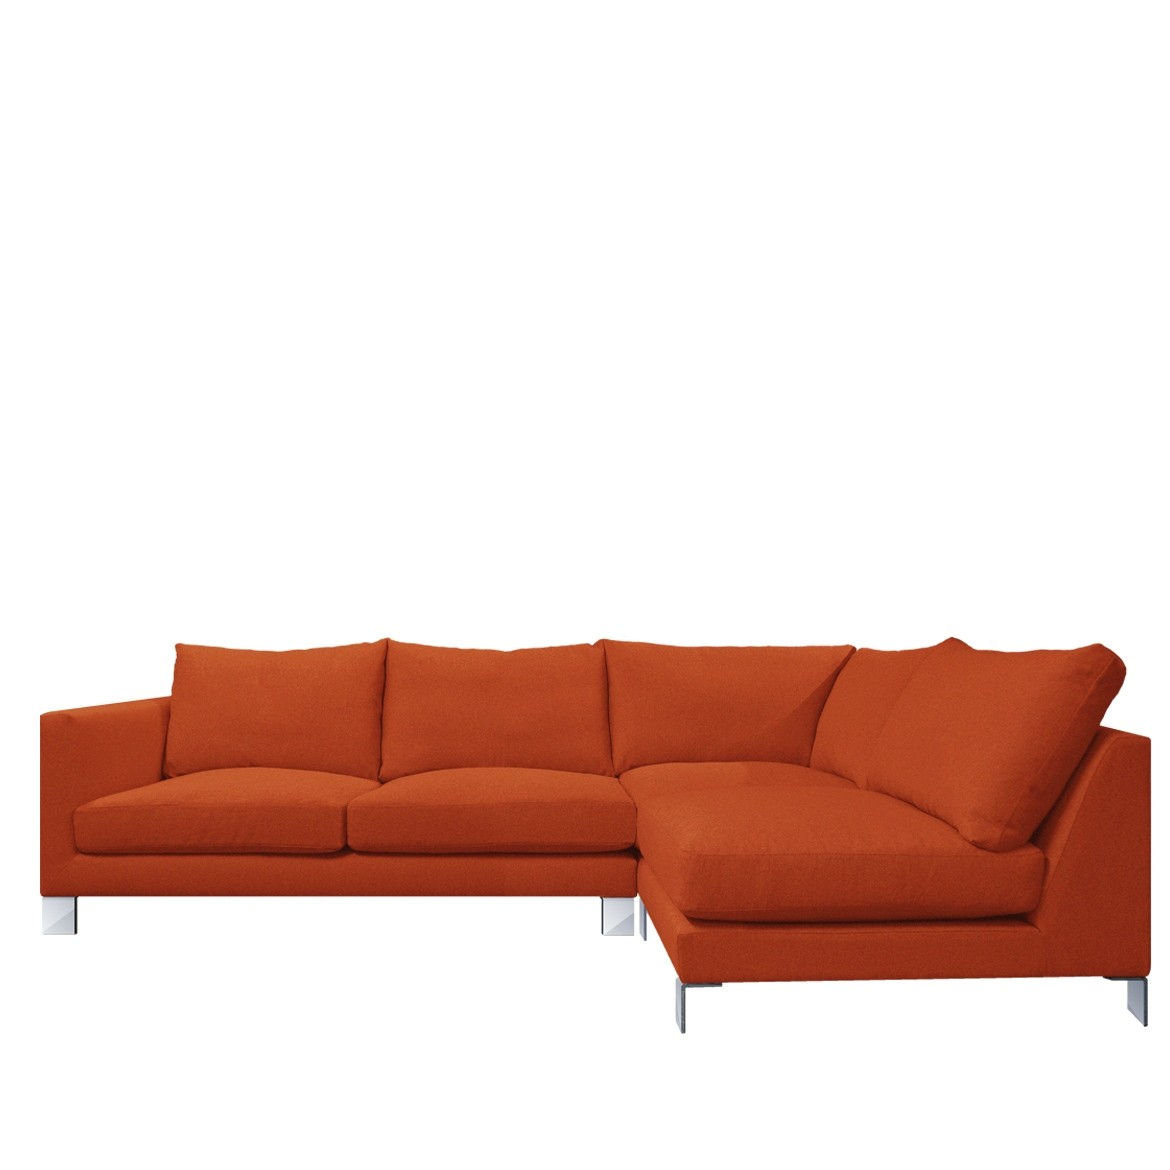 Siesta large deep corner sofa